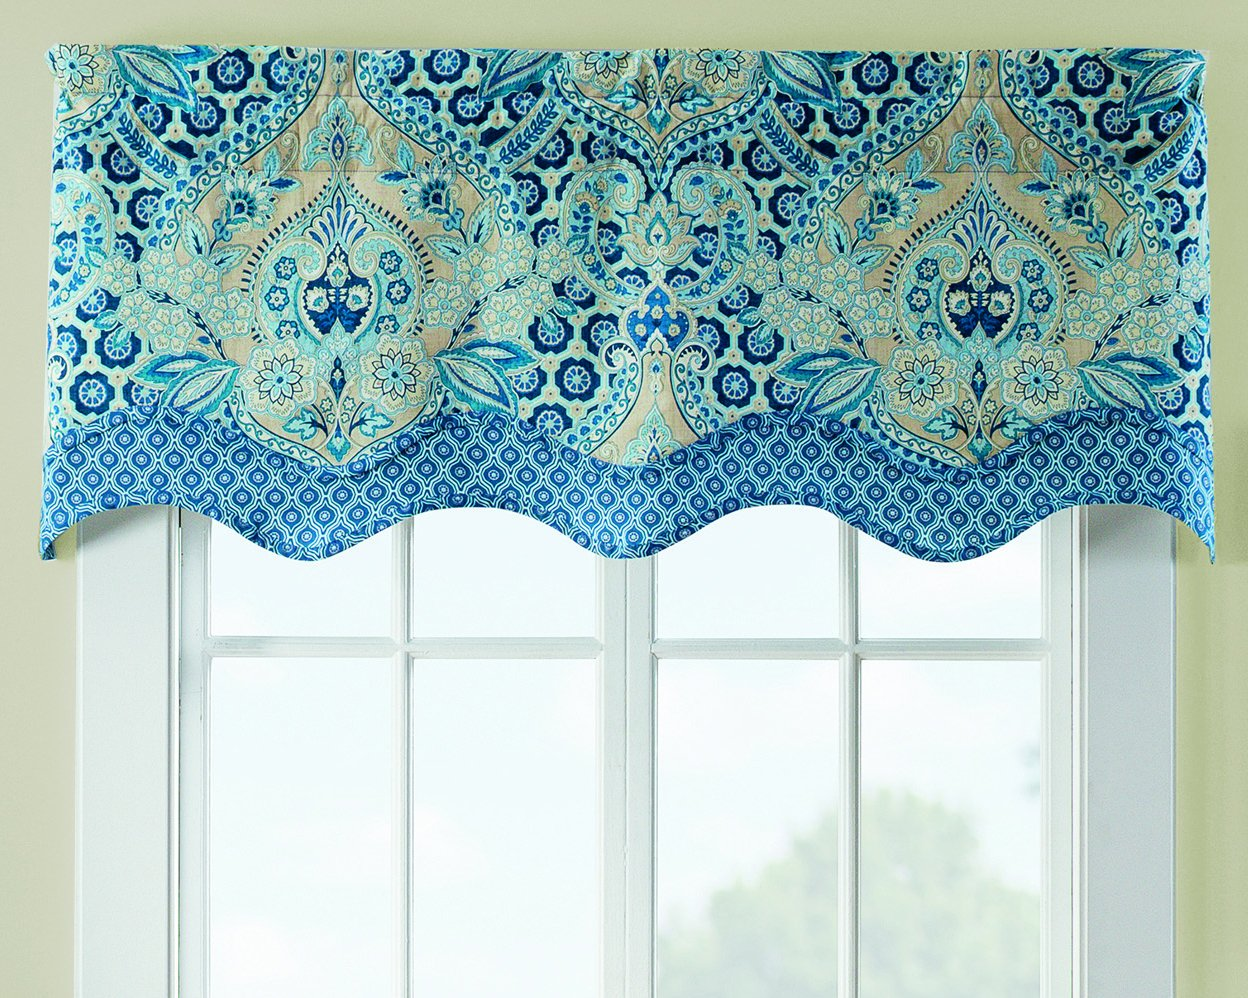 WAVERLY Moonlit Shadows Window Valance 52x18 Lapis